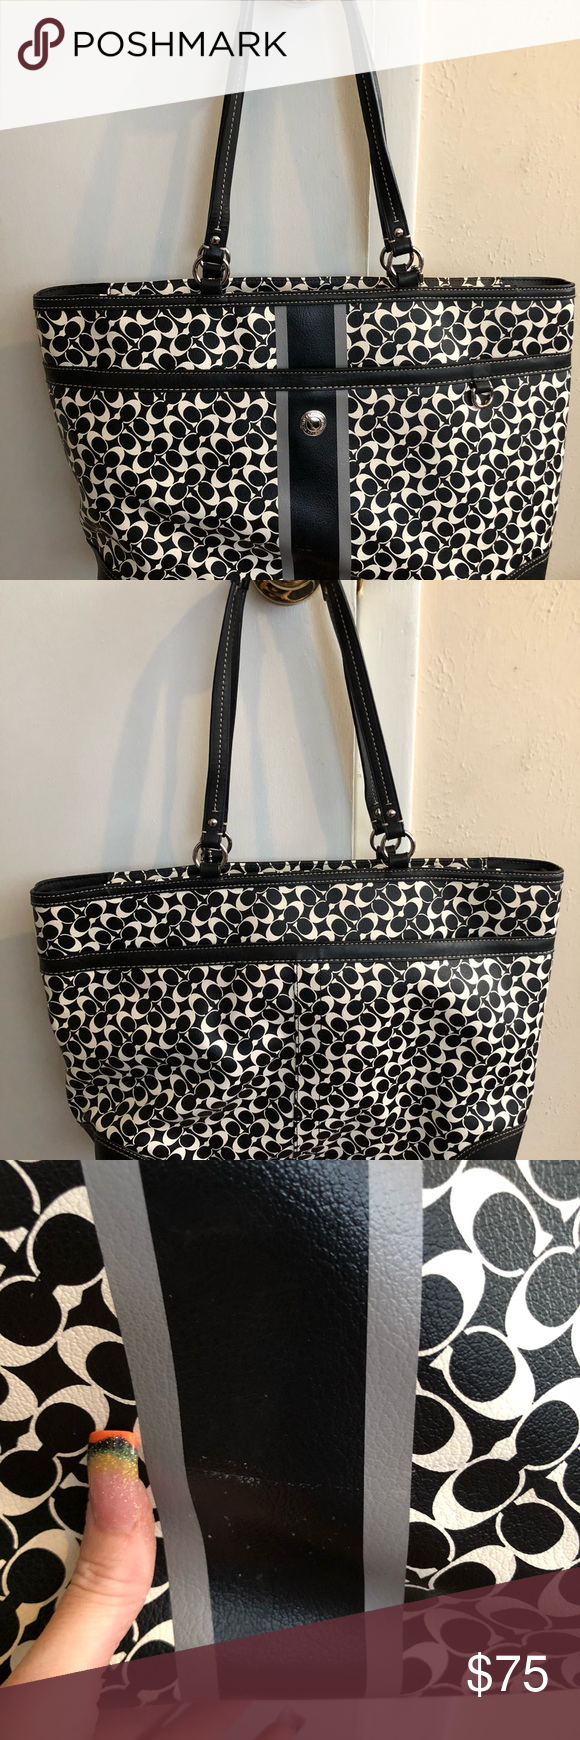 Coach bag Coach bag used a couple times. Has a few white marks see in pictures. You could use as a laptop bag if wanted too I used it as a purse. Coach Bags Shoulder Bags